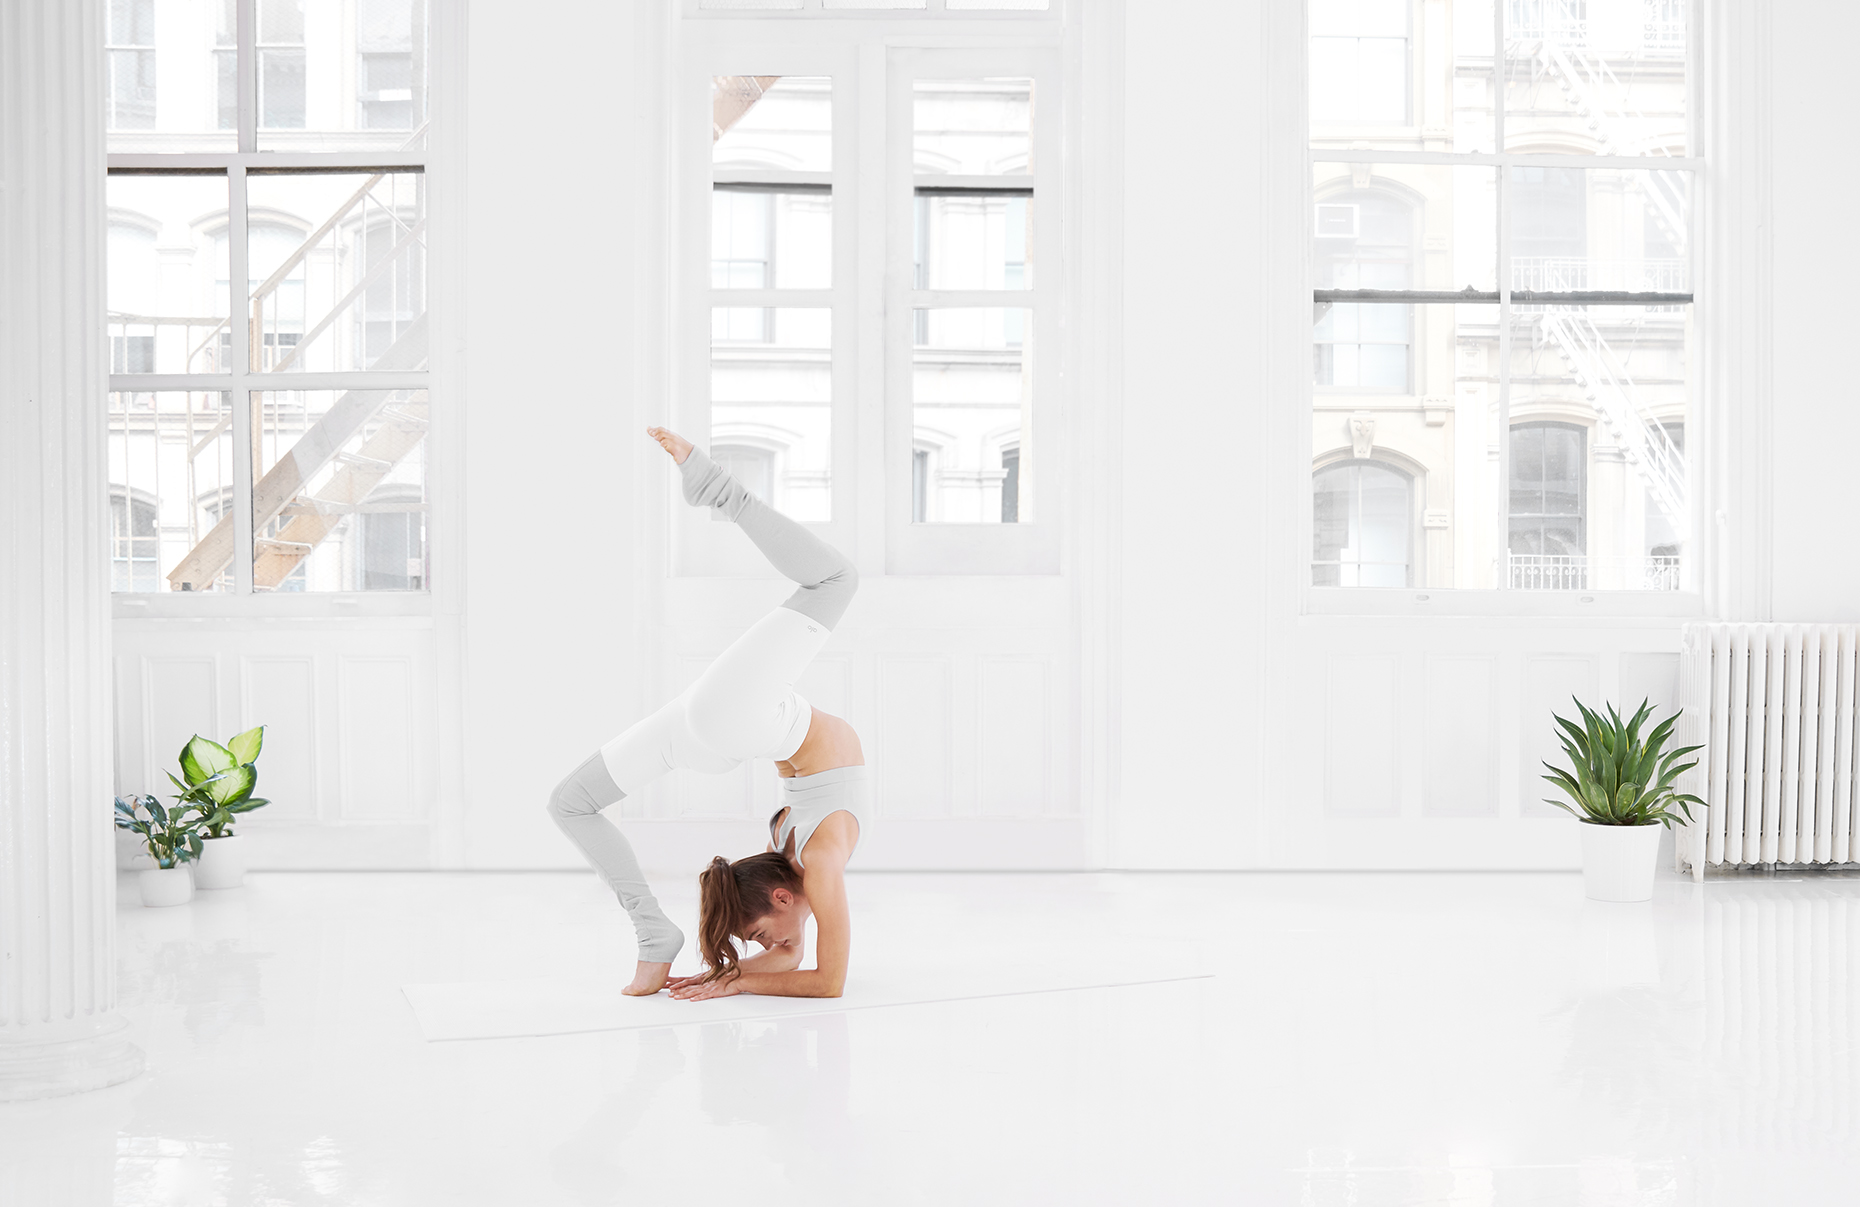 NYC Fitness Yoga Lifestyle Photographer